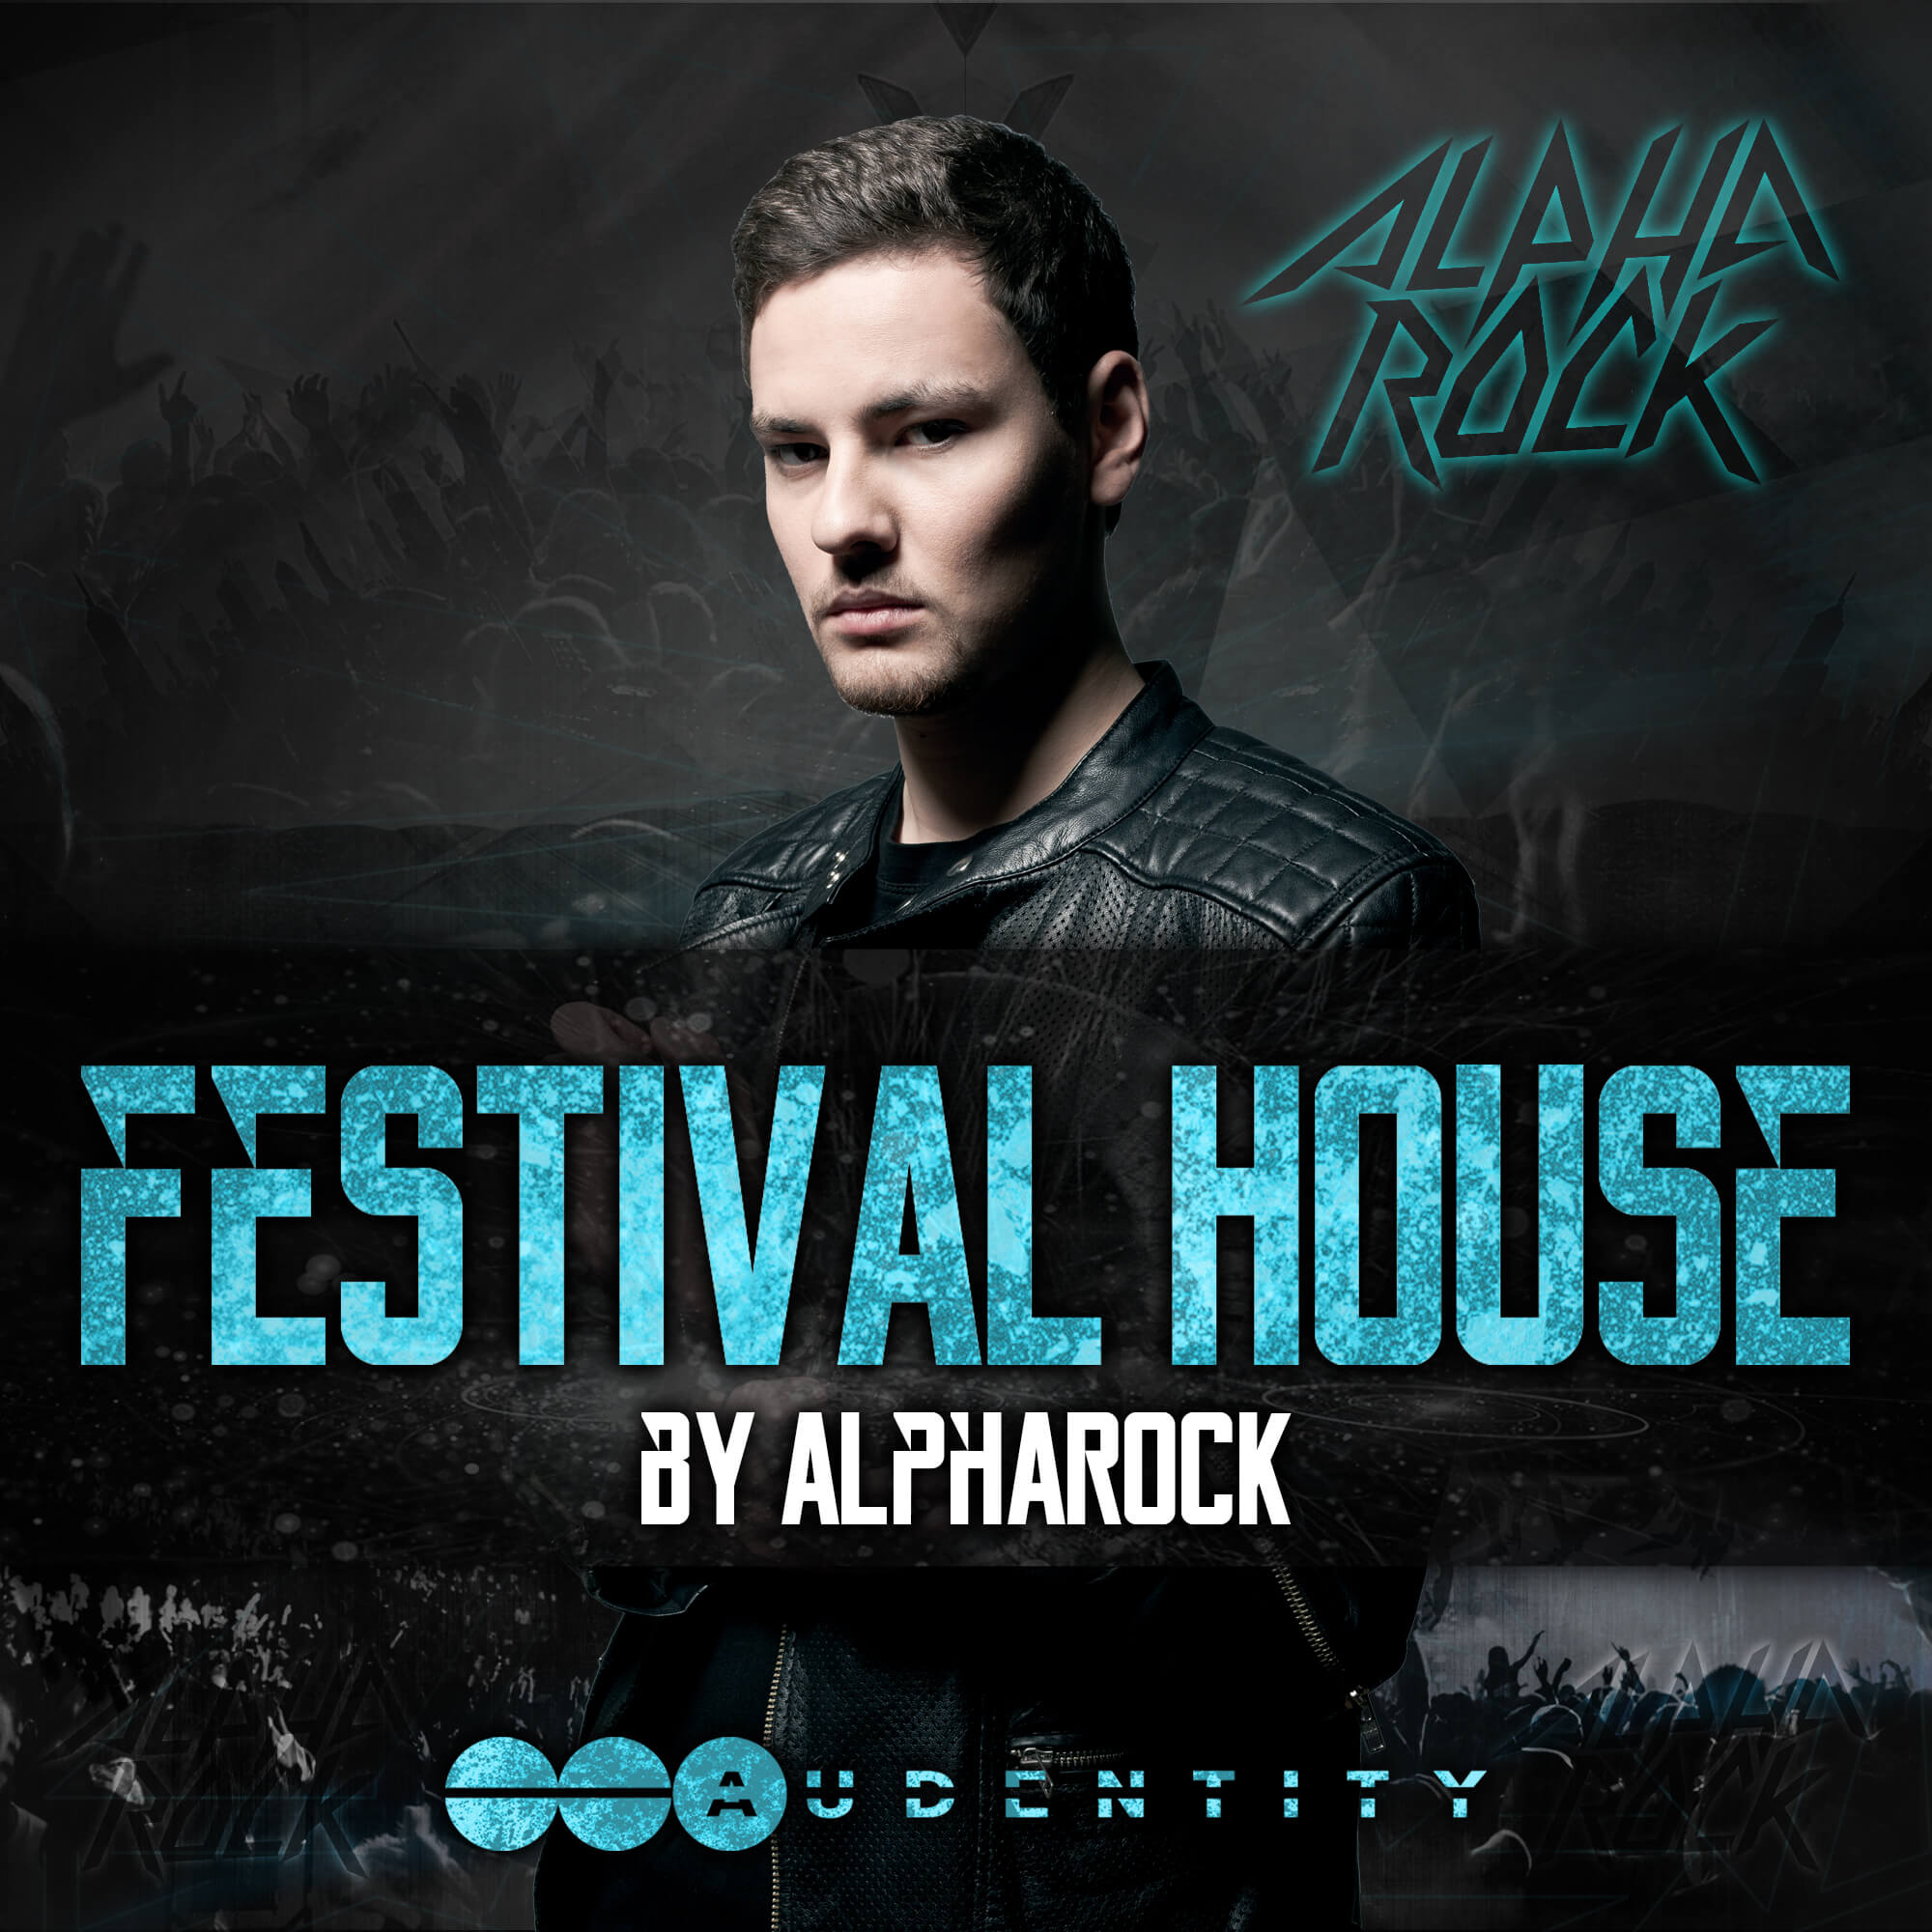 Audentity- Festival House By Alpharock